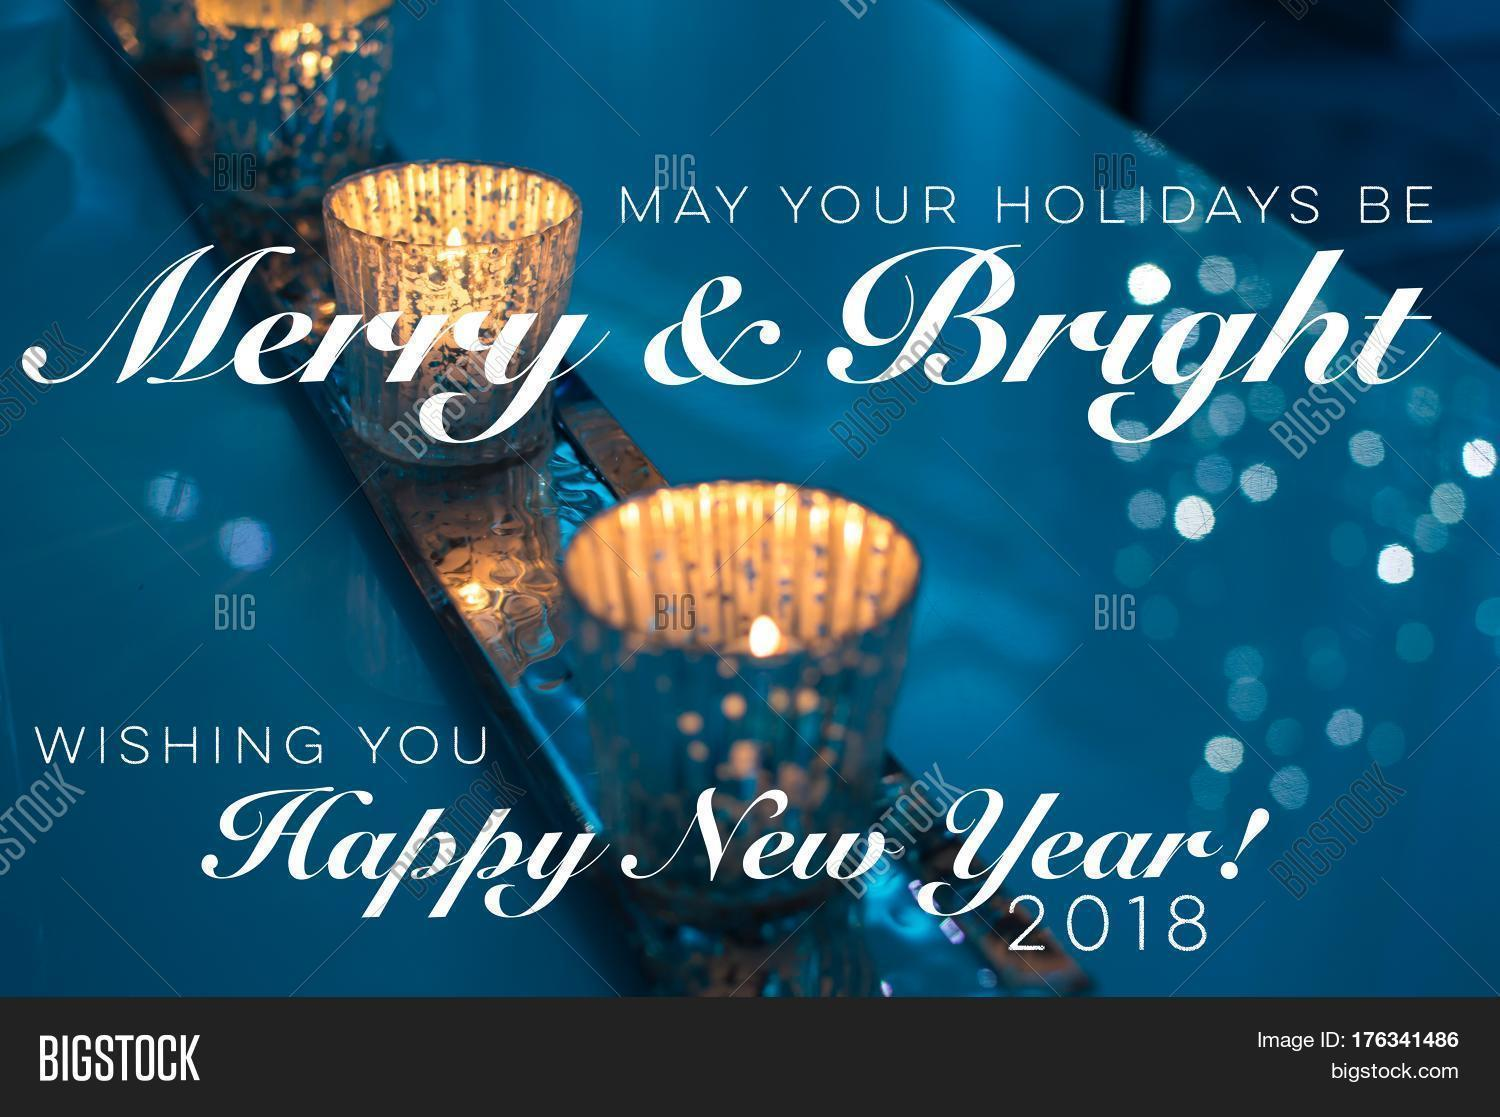 Holiday greeting card new years image photo bigstock holiday greeting card with new years wishes 2017 2018 non denominational with beautiful candles burning with kristyandbryce Images